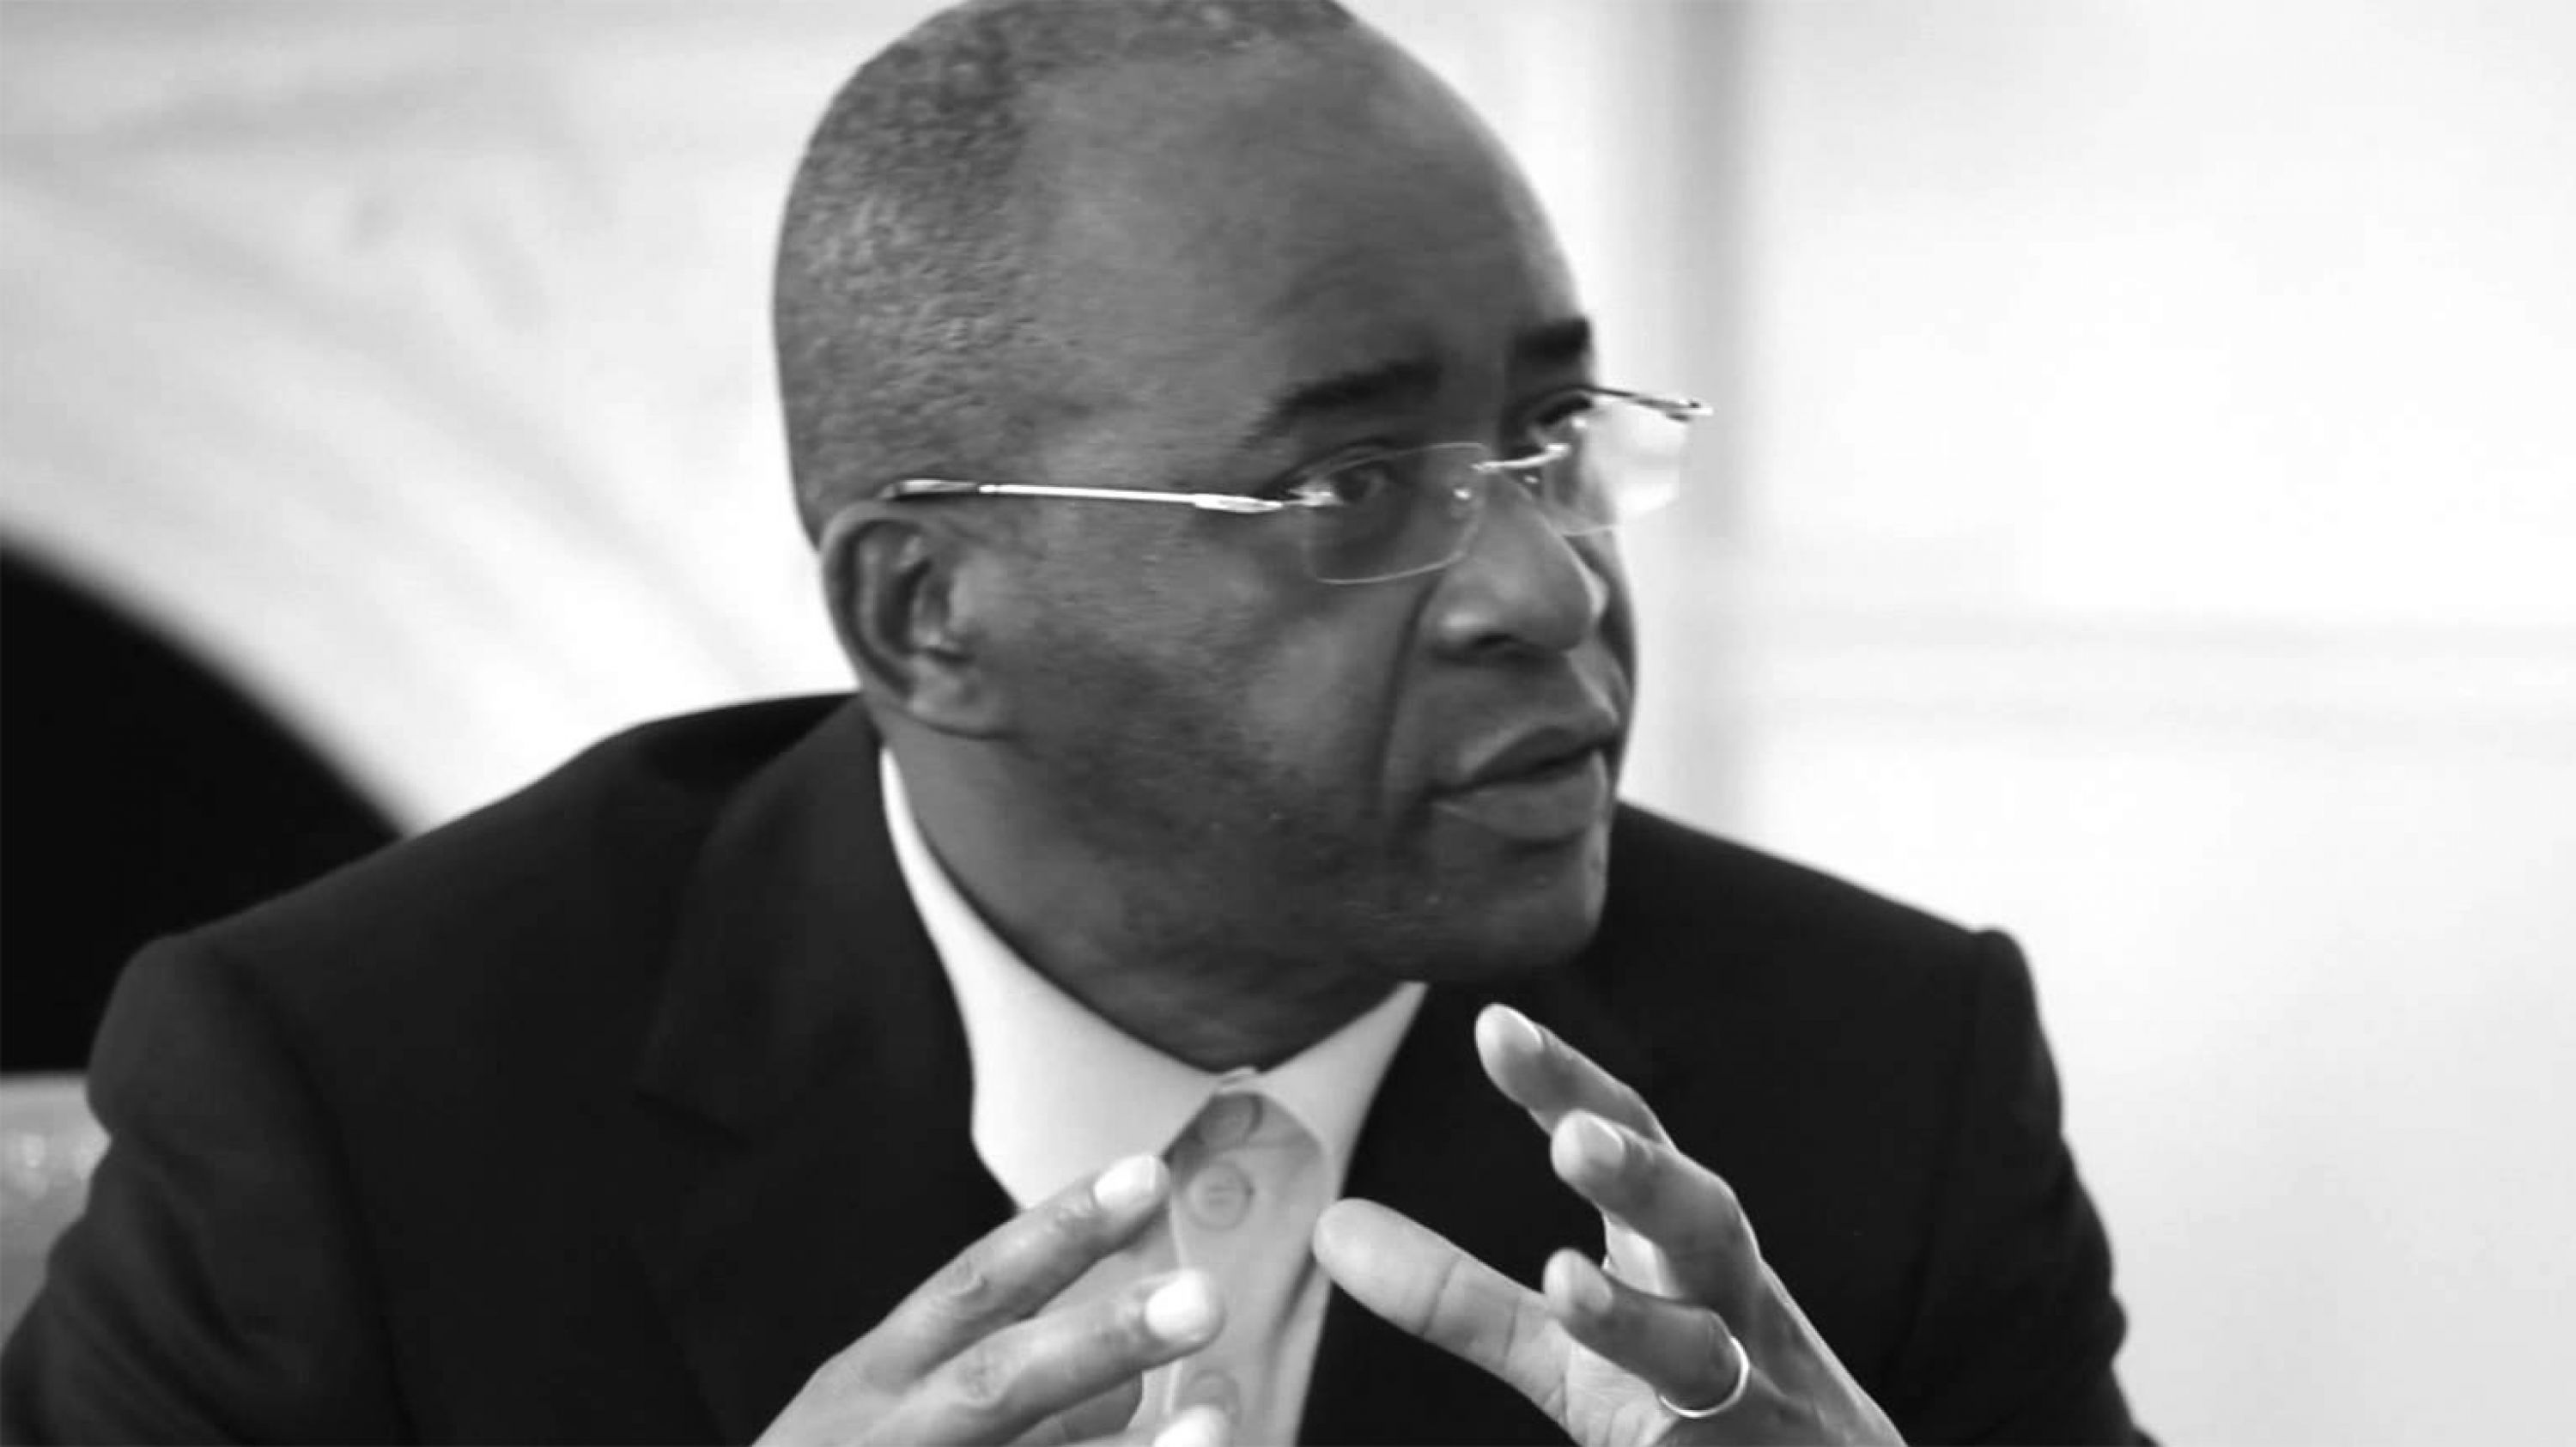 """Always be conscious that you are setting a tone and a value system."" - How Strive Masiyiwa Empowers Africa"